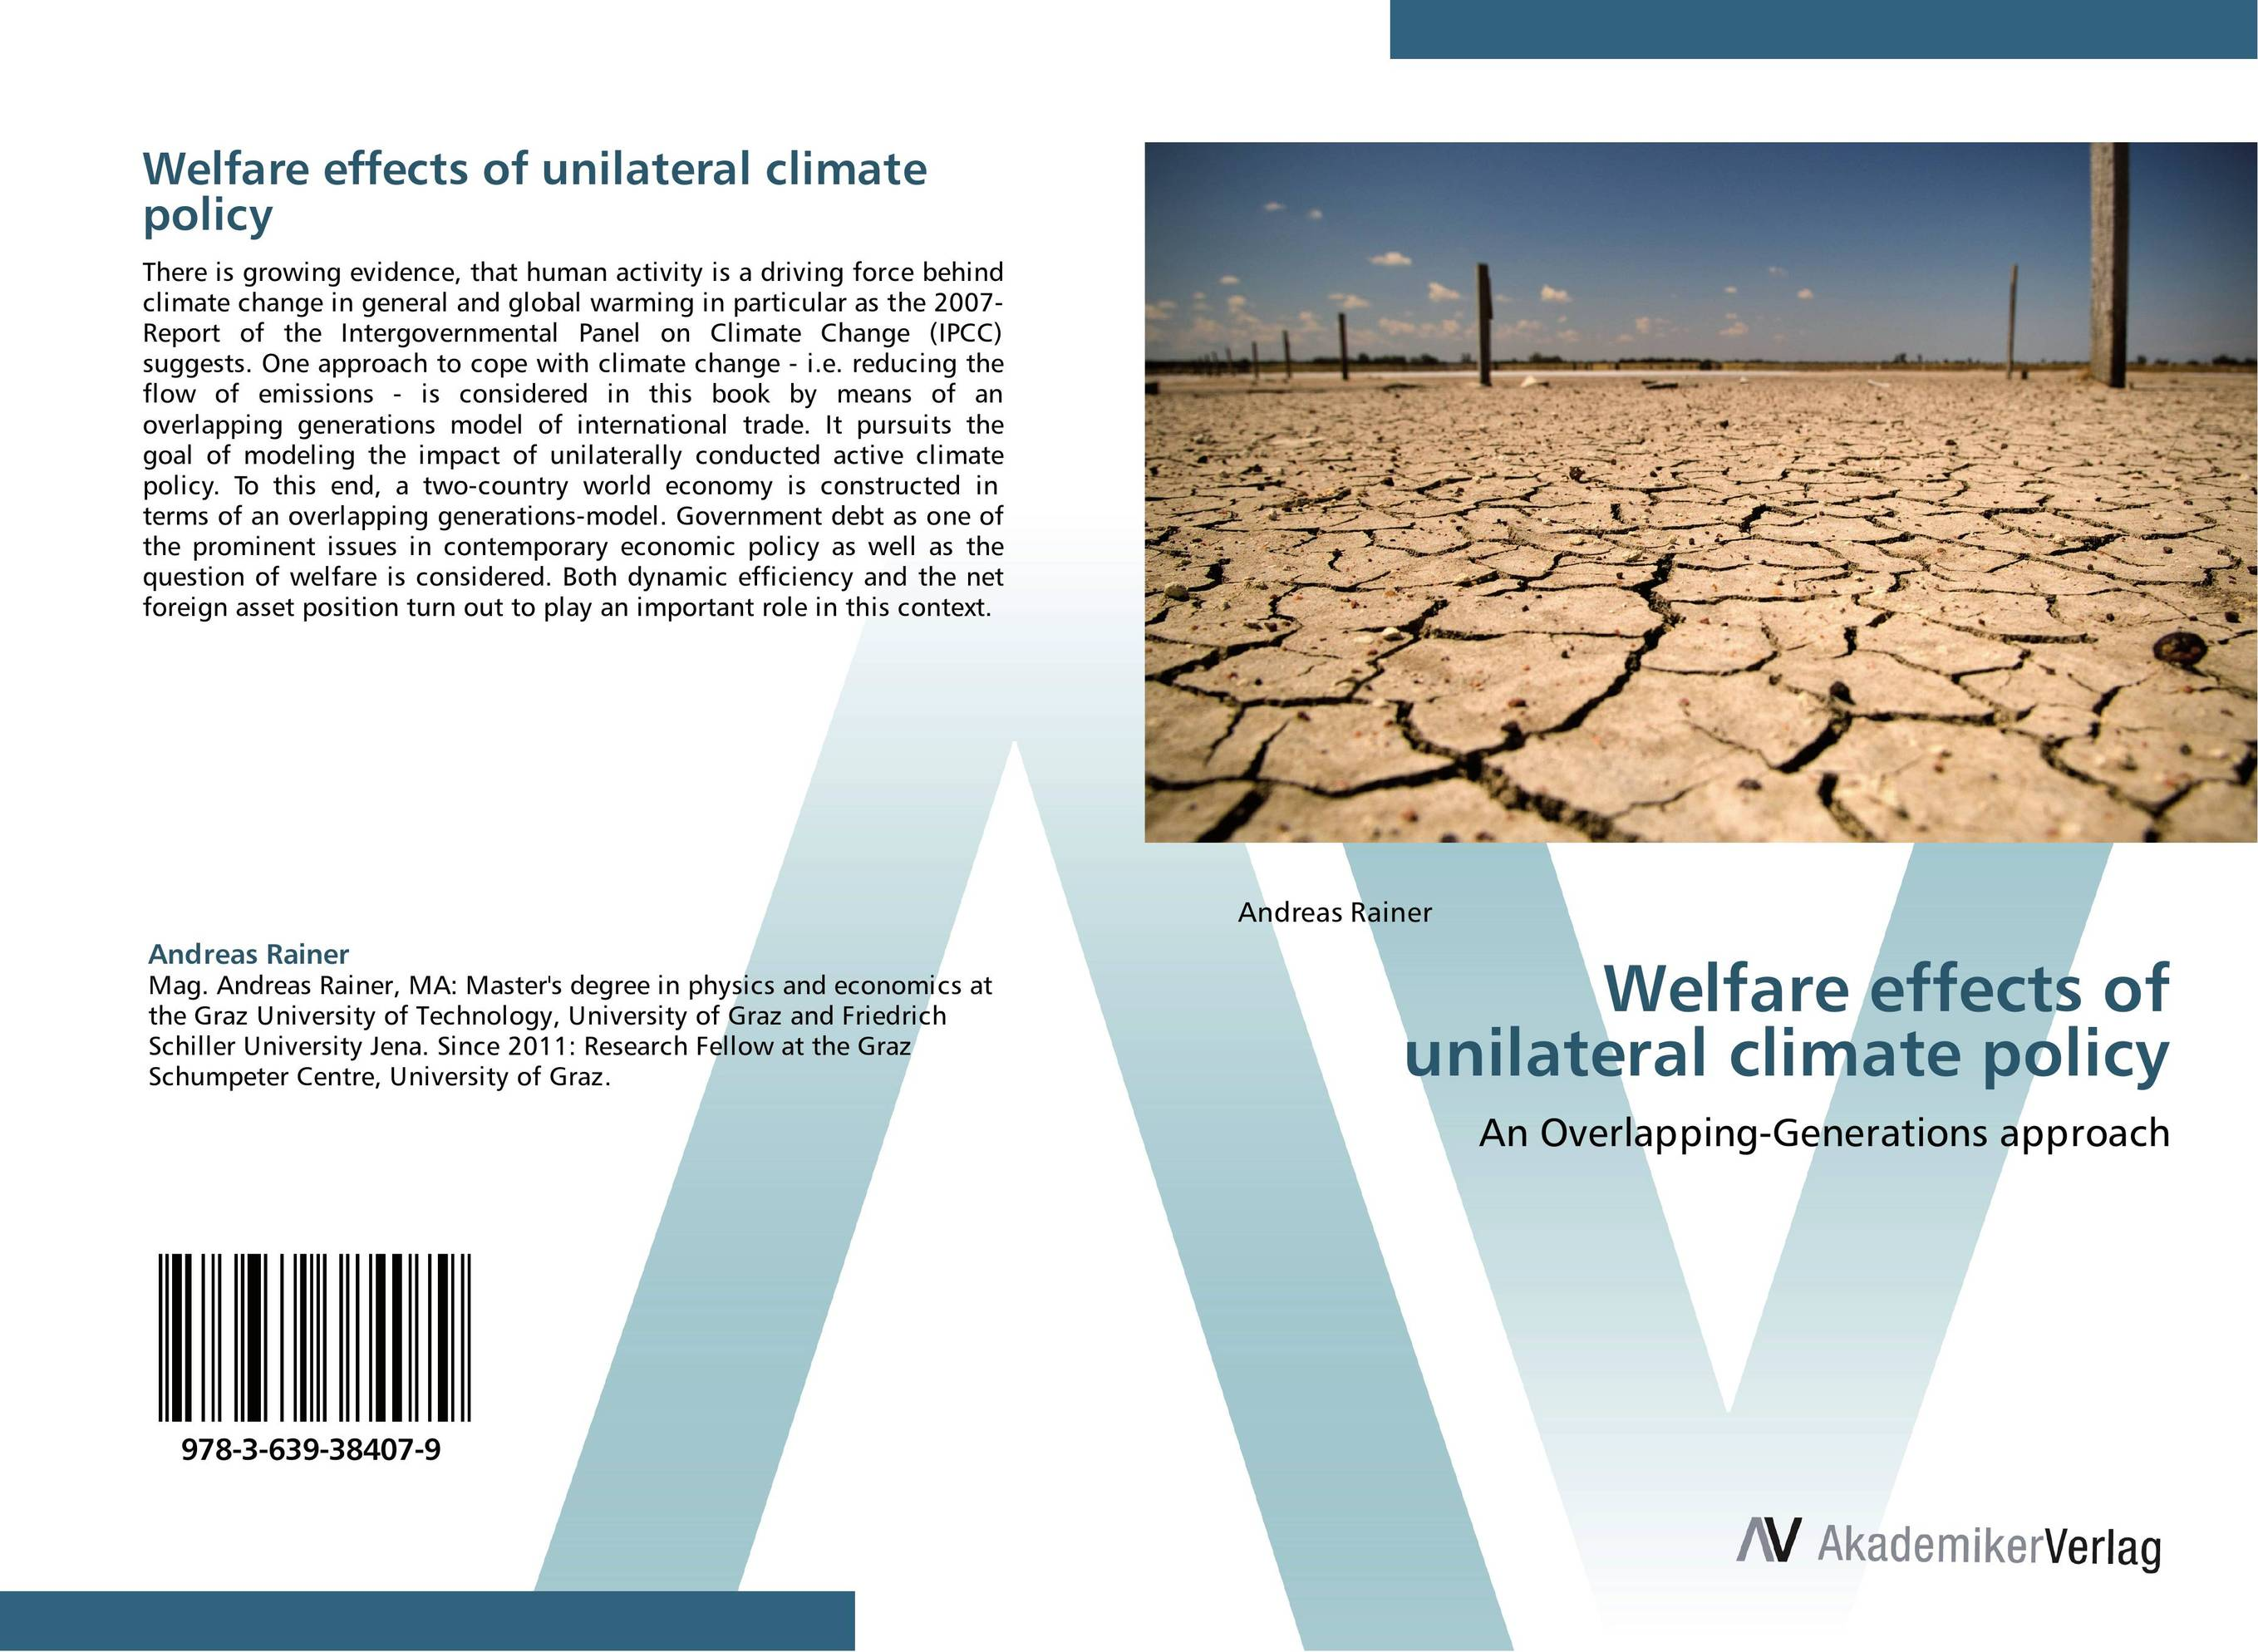 Welfare effects of unilateral climate policy cuhaj g standard catalog of world paper money general issues 1368 1960